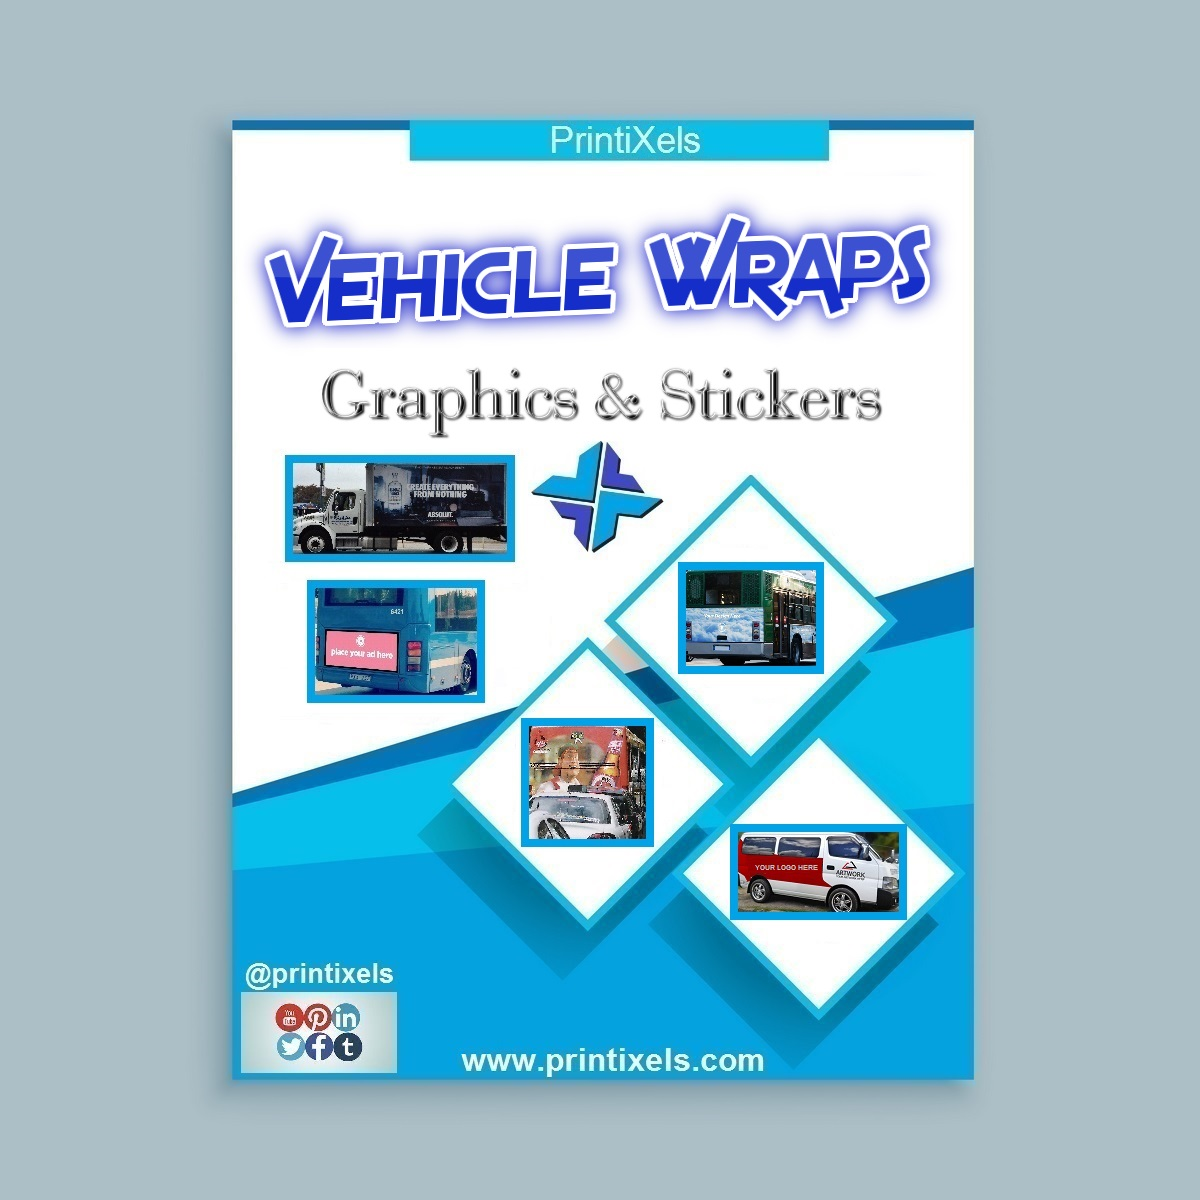 Car sticker maker philippines - Vehicle Wraps Graphics Stickers Custom